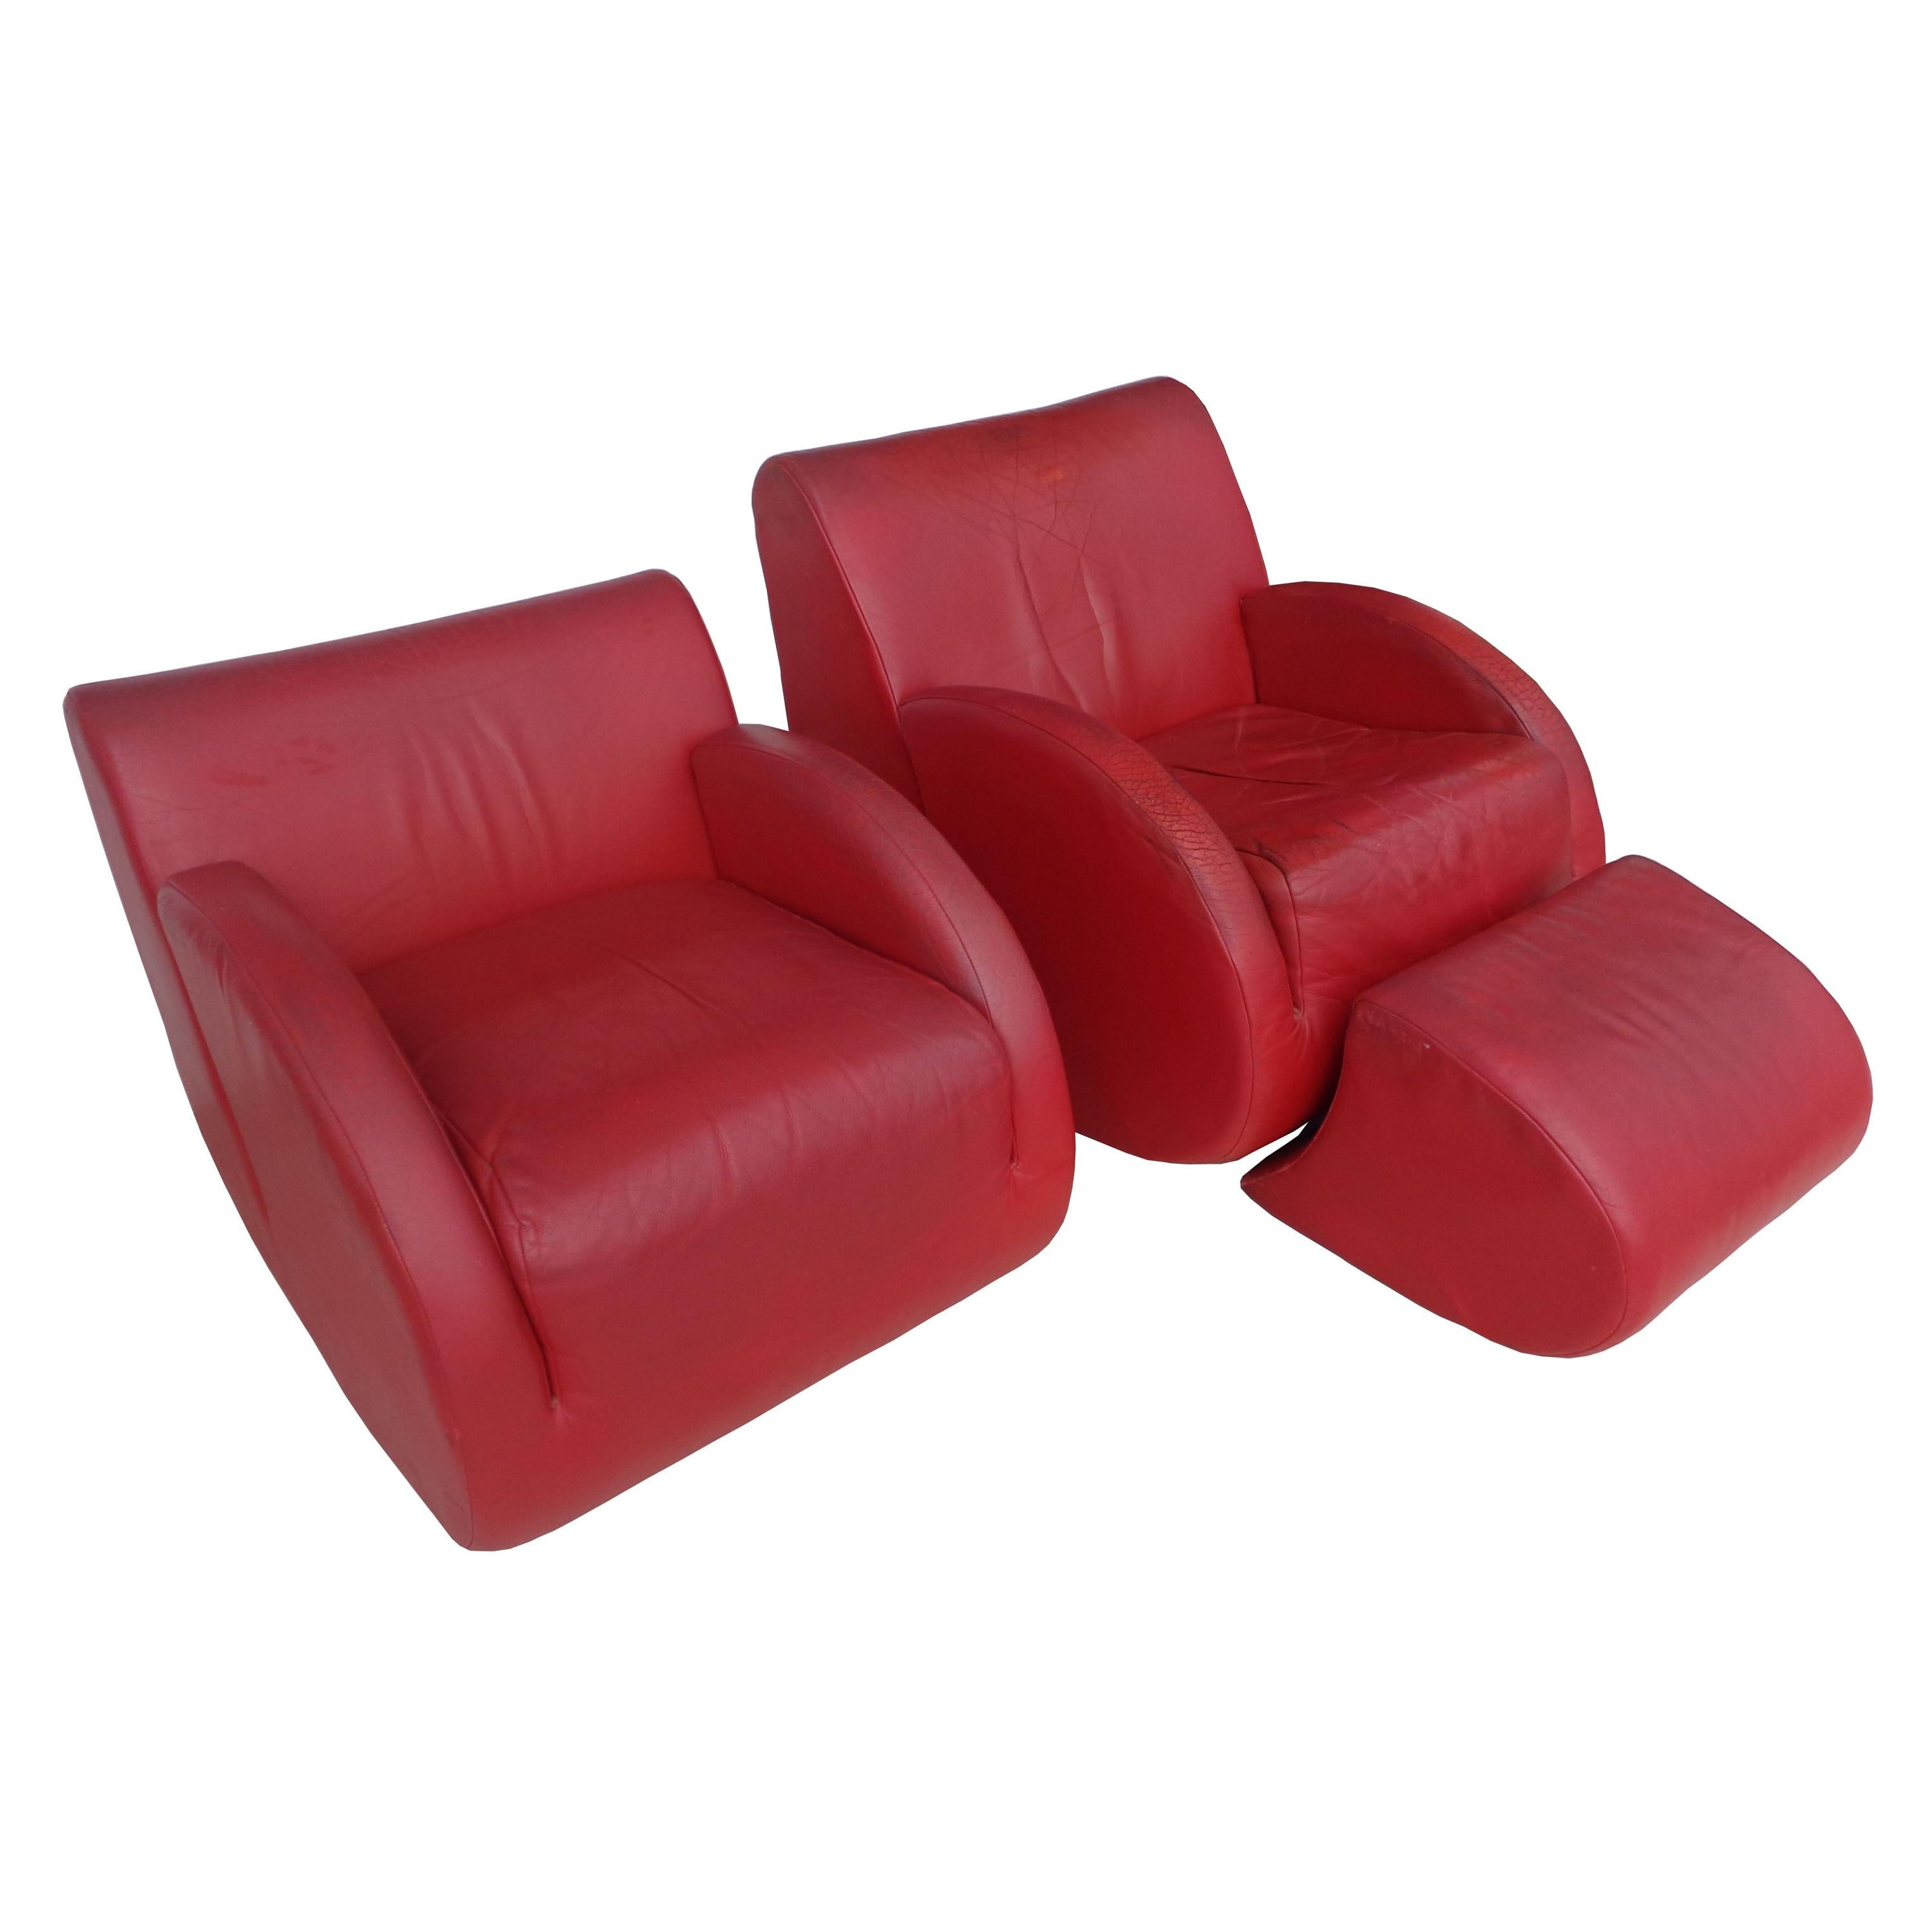 """Pair of Vladimir Kagan """"Rock Star"""" His and Her Lounge Chairs and Ottoman"""